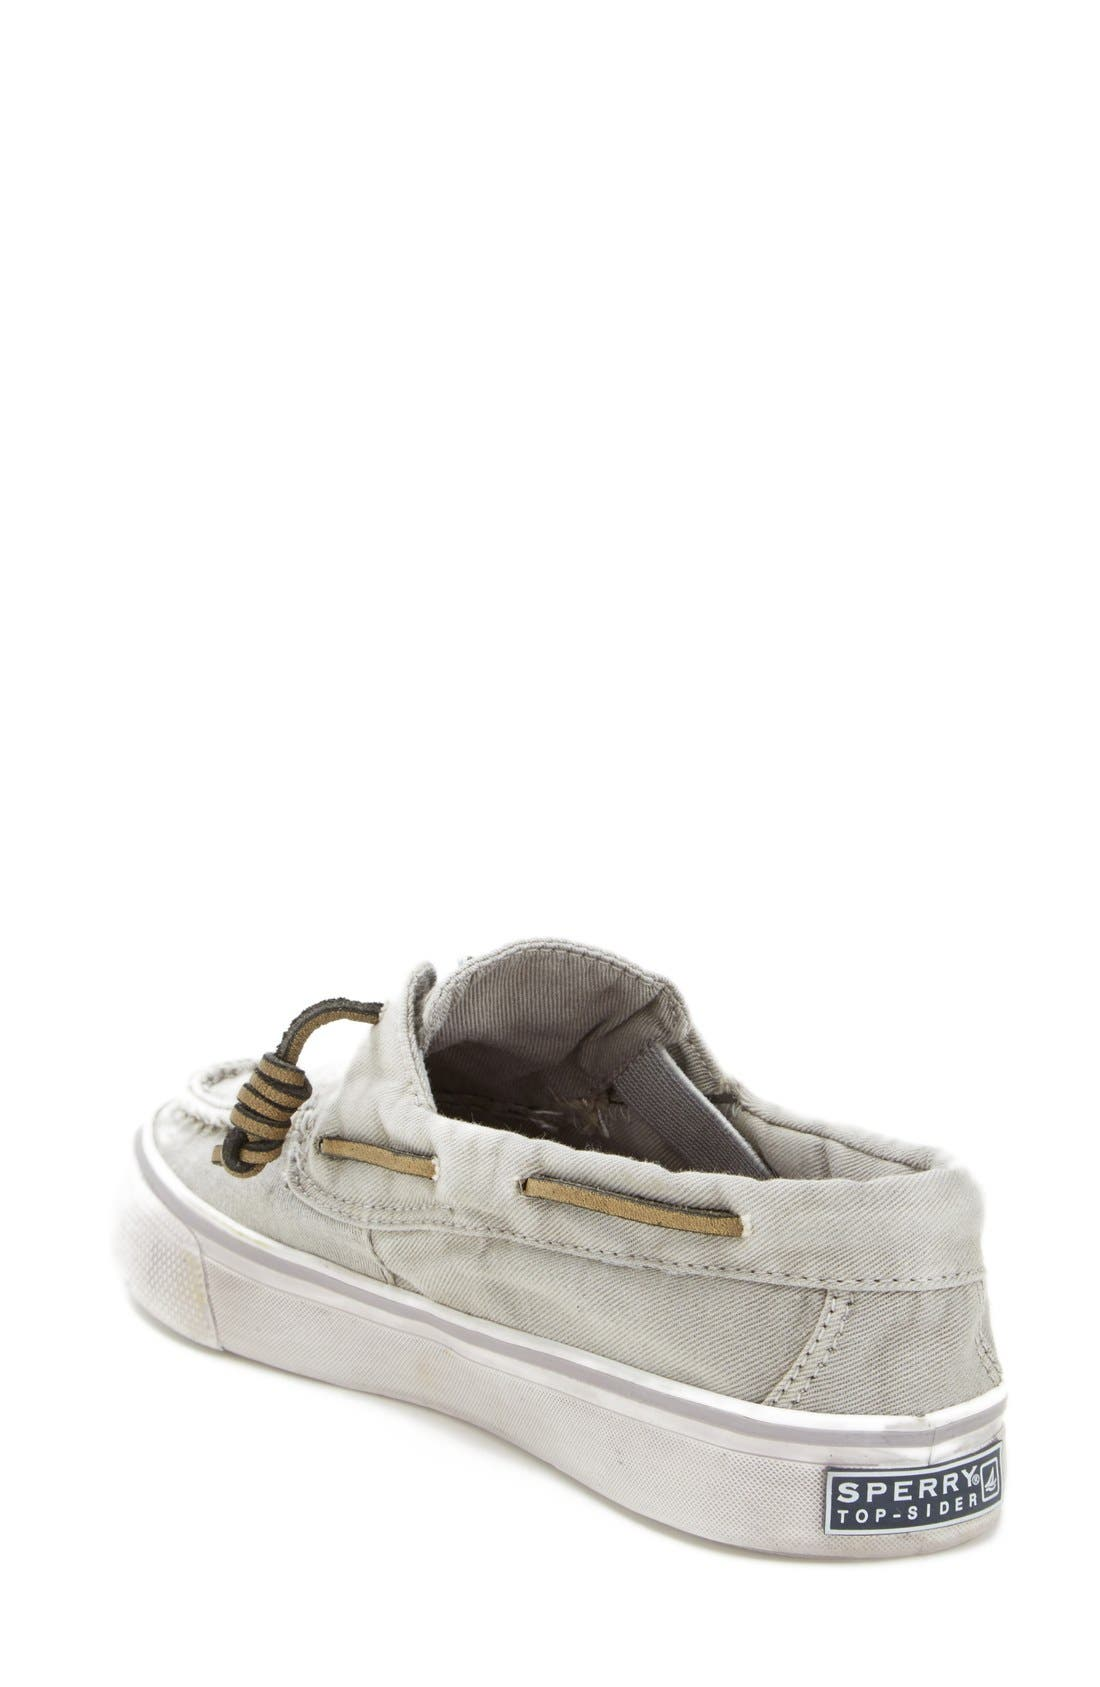 Top-Sider<sup>®</sup> 'Bahama' Sequined Boat Shoe,                             Alternate thumbnail 54, color,